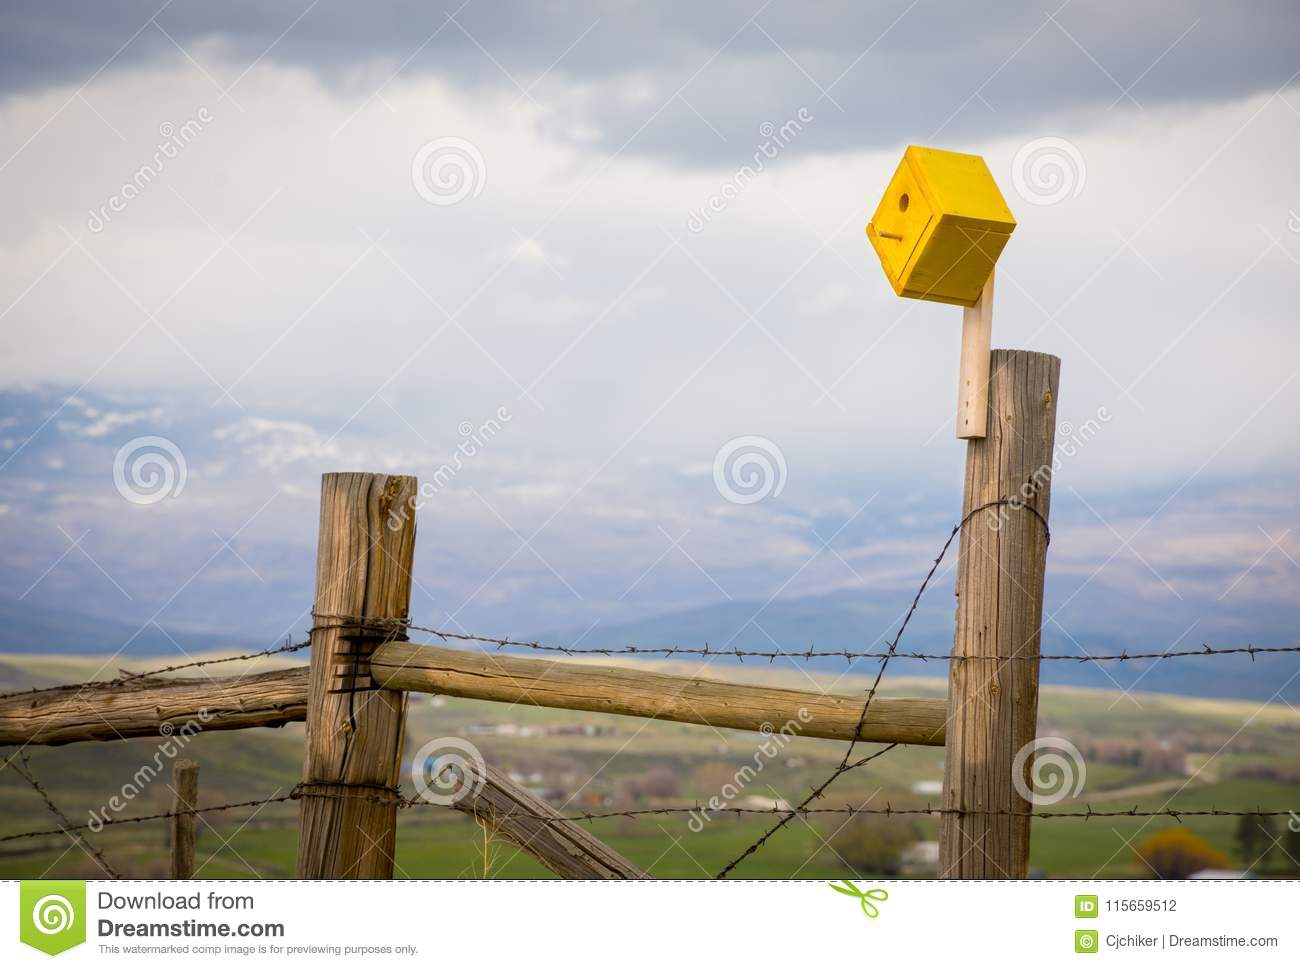 Yellow Birdhouse On A Barbed Wire Fence Stock Photo - Image of house ...